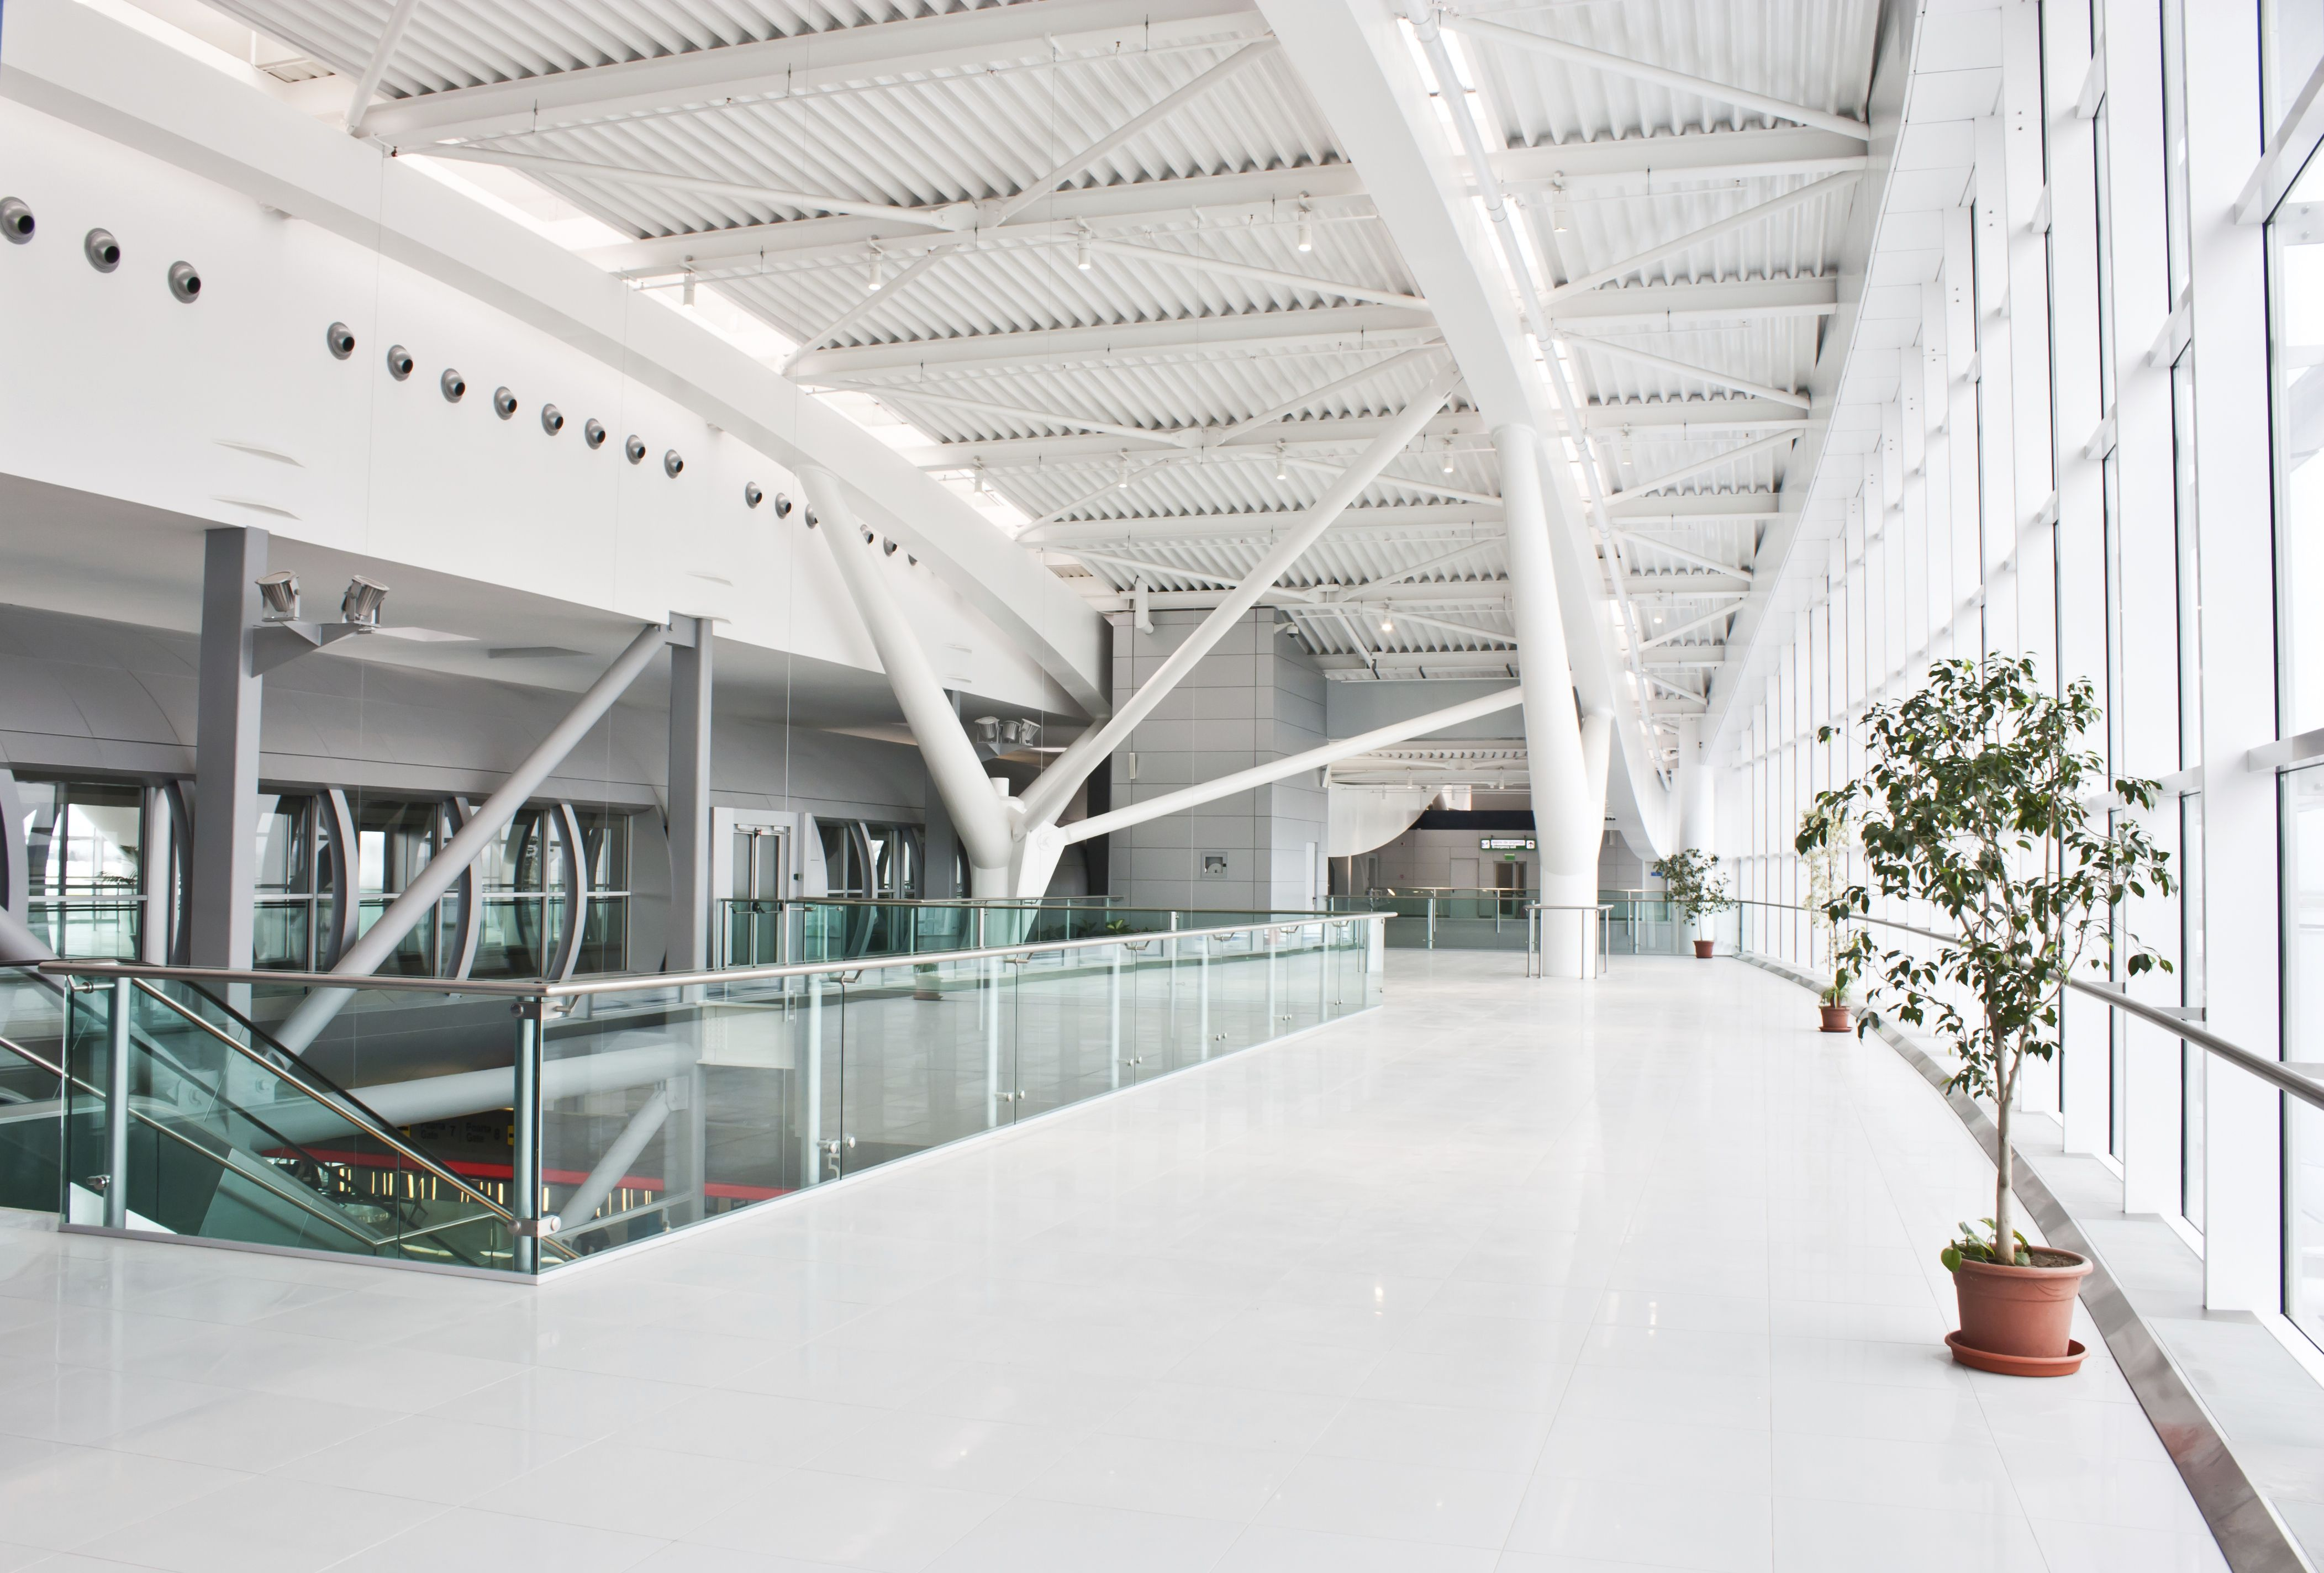 A gleaming concourse at Bucharest Airport